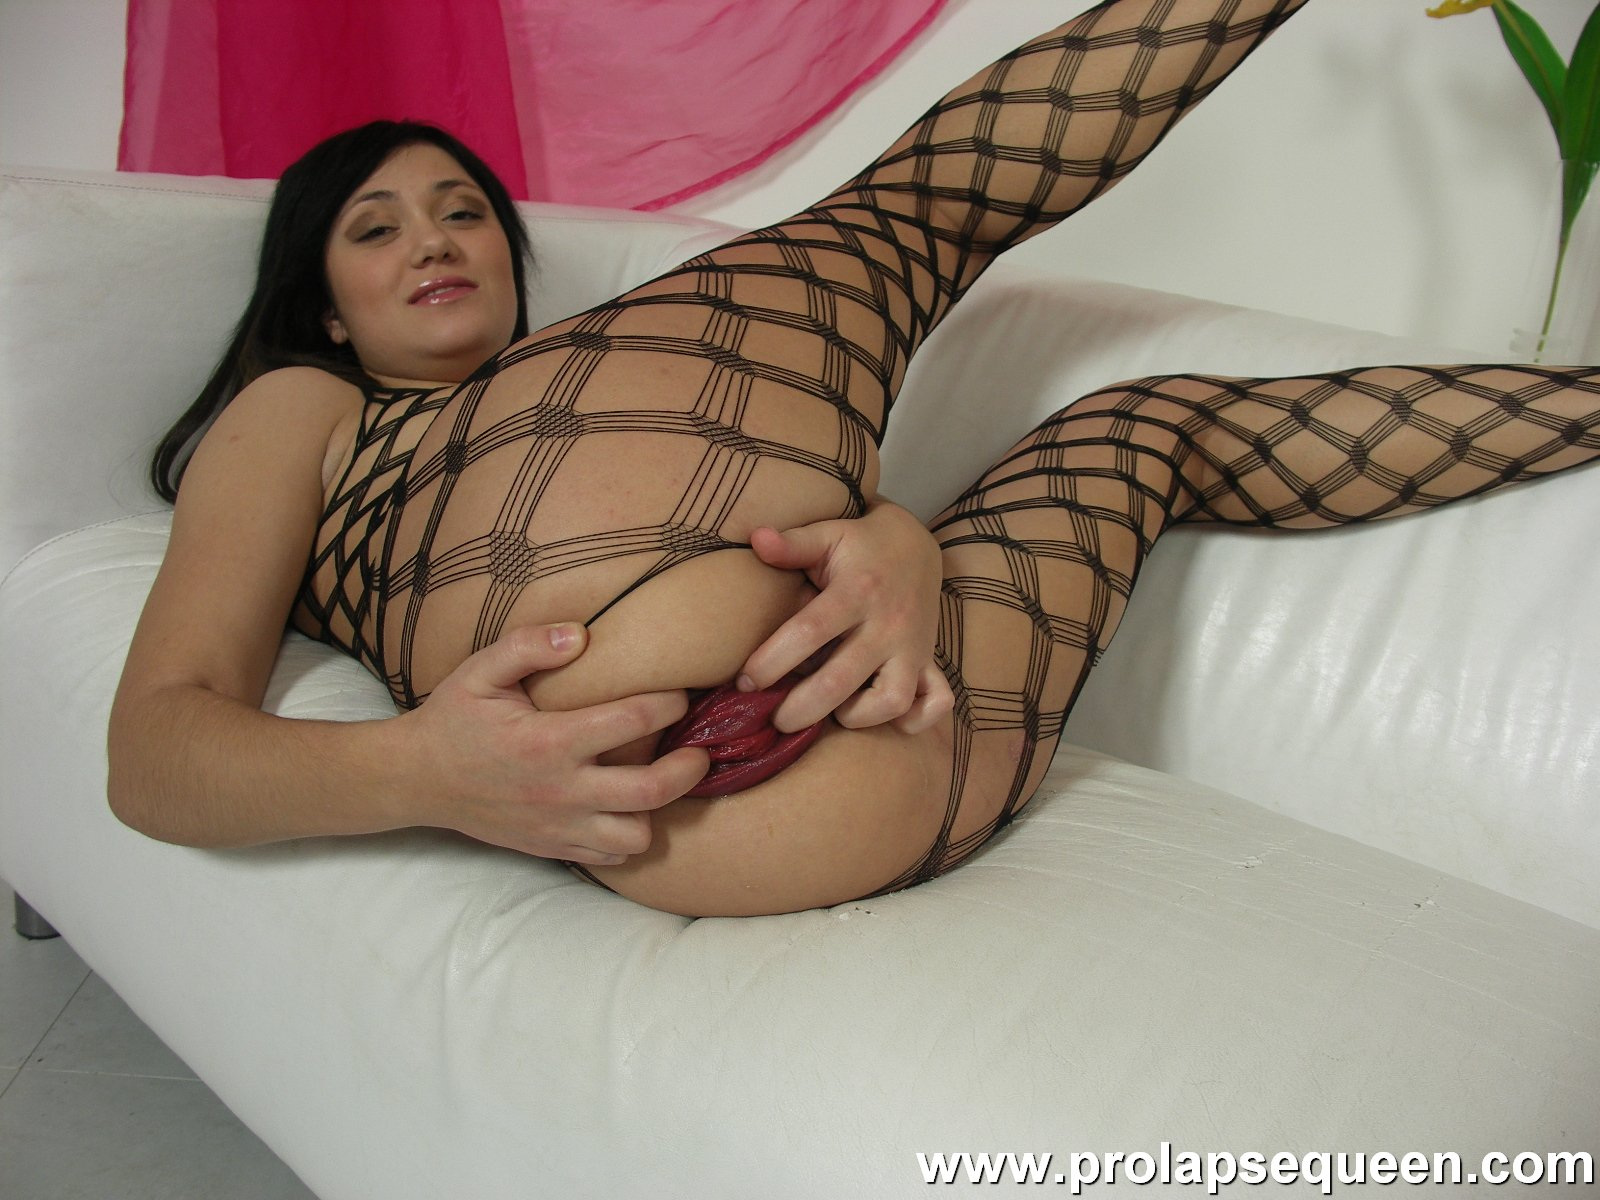 Download [ProlapseQueen] Aiza Fishnet prolapse